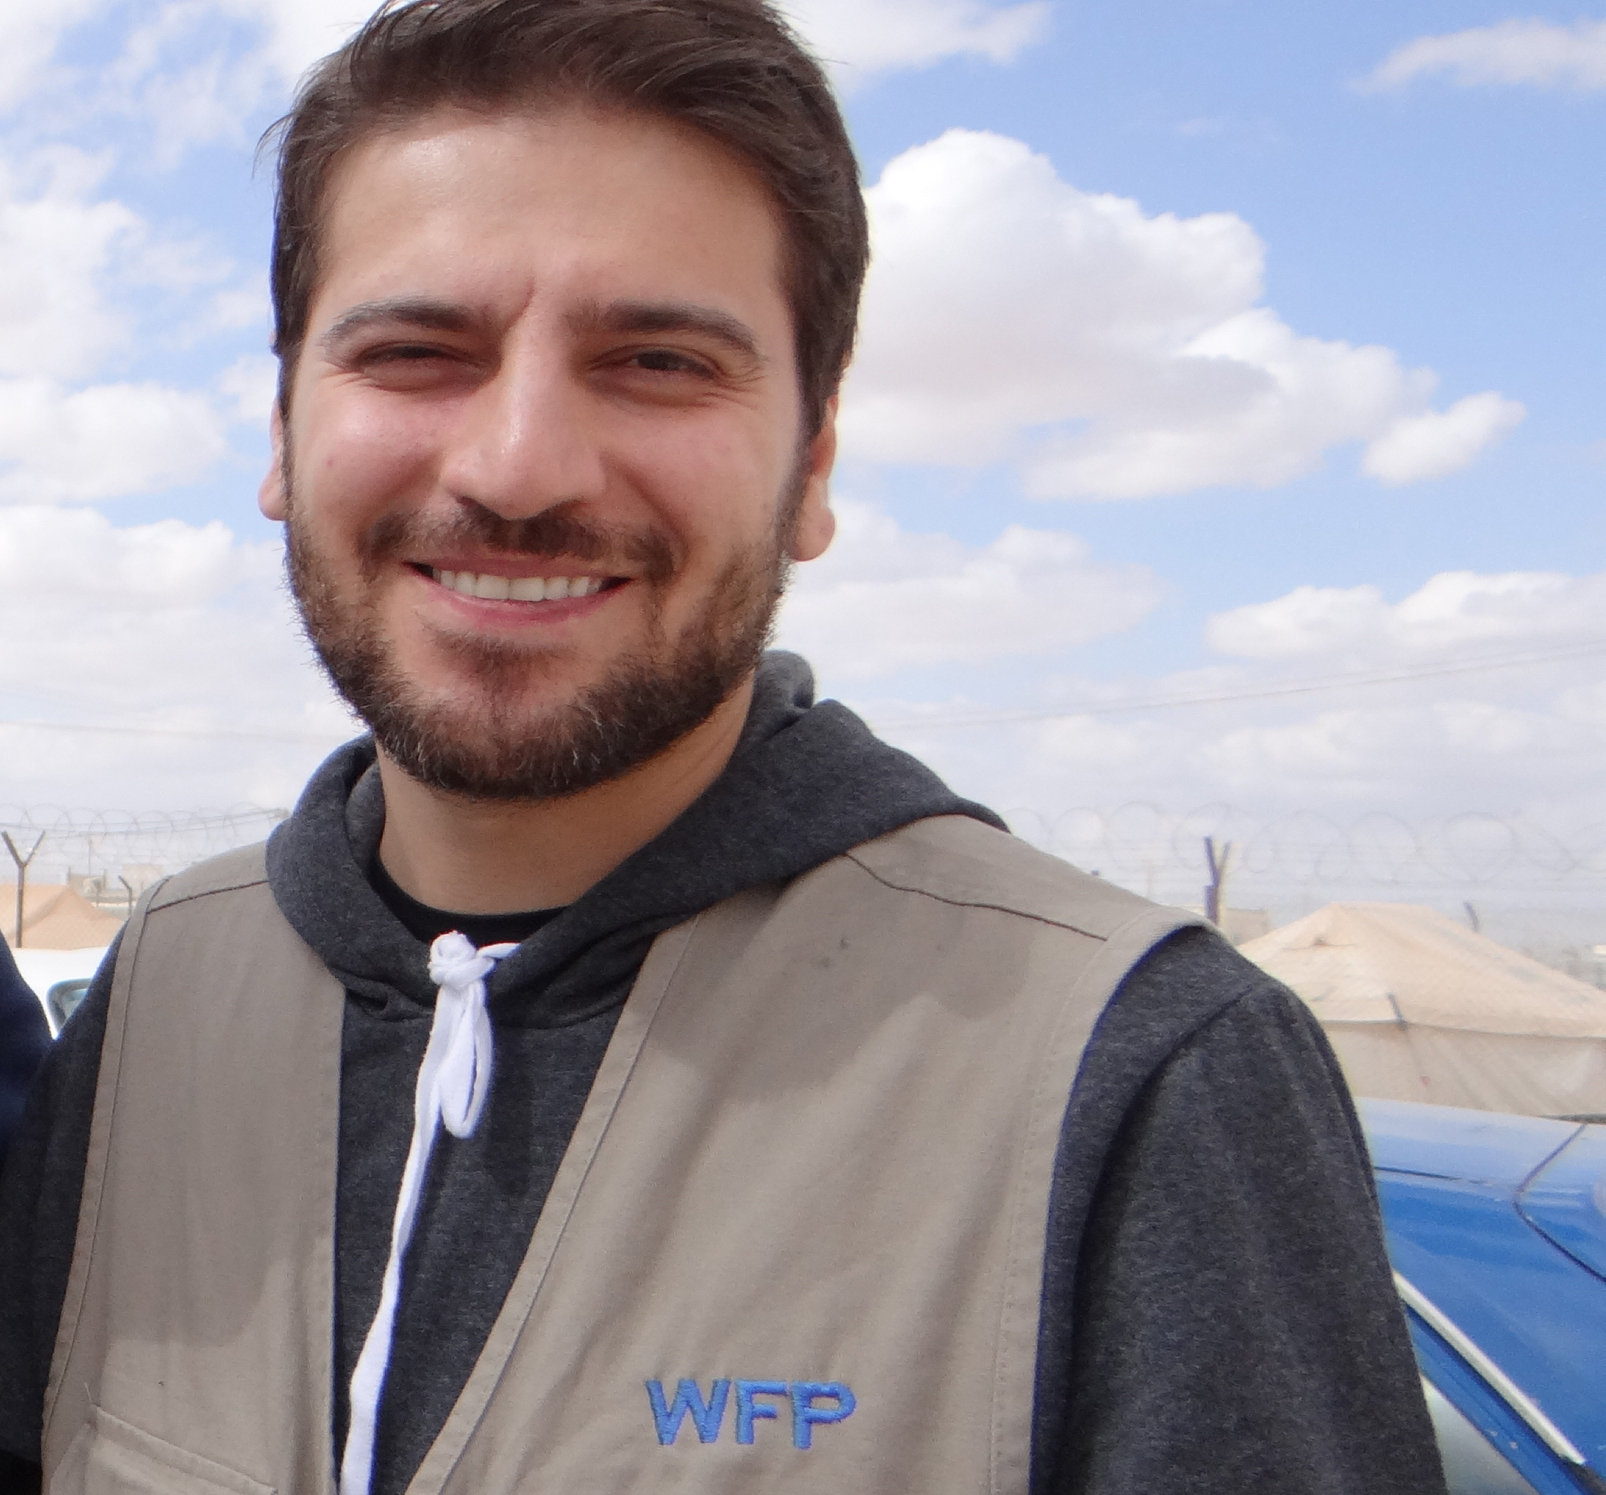 Singer Sami Yusuf Joins WFP As Global Ambassador Against Hunger